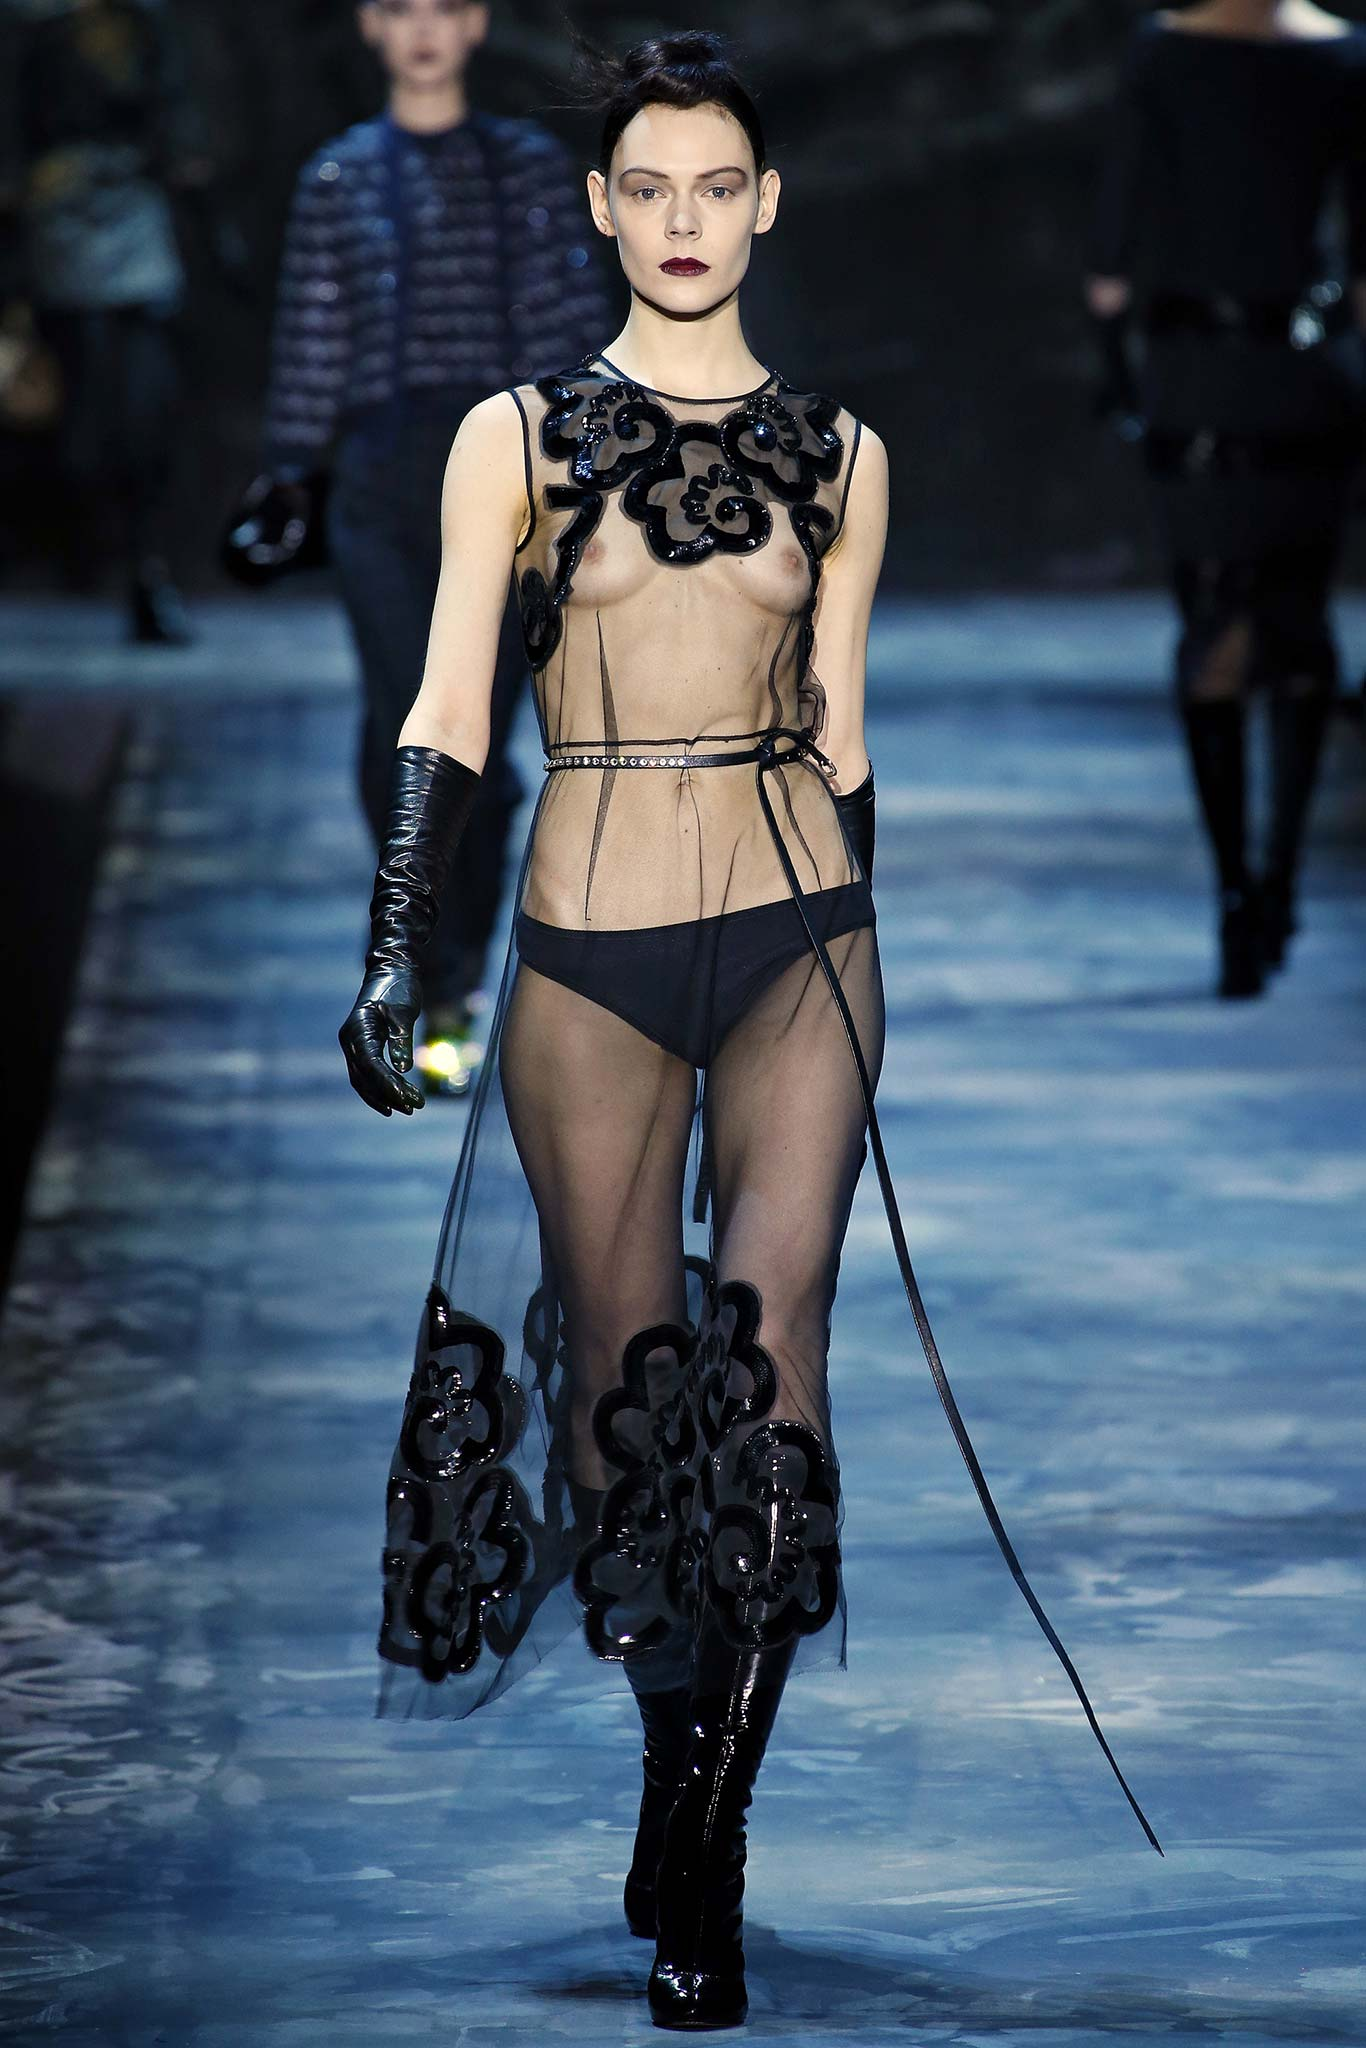 Marc Jacobs - FIFTY SHADES OF GREY - FALL 2015 - FASHION RUNWAY TRENDS - STREETTROTTER